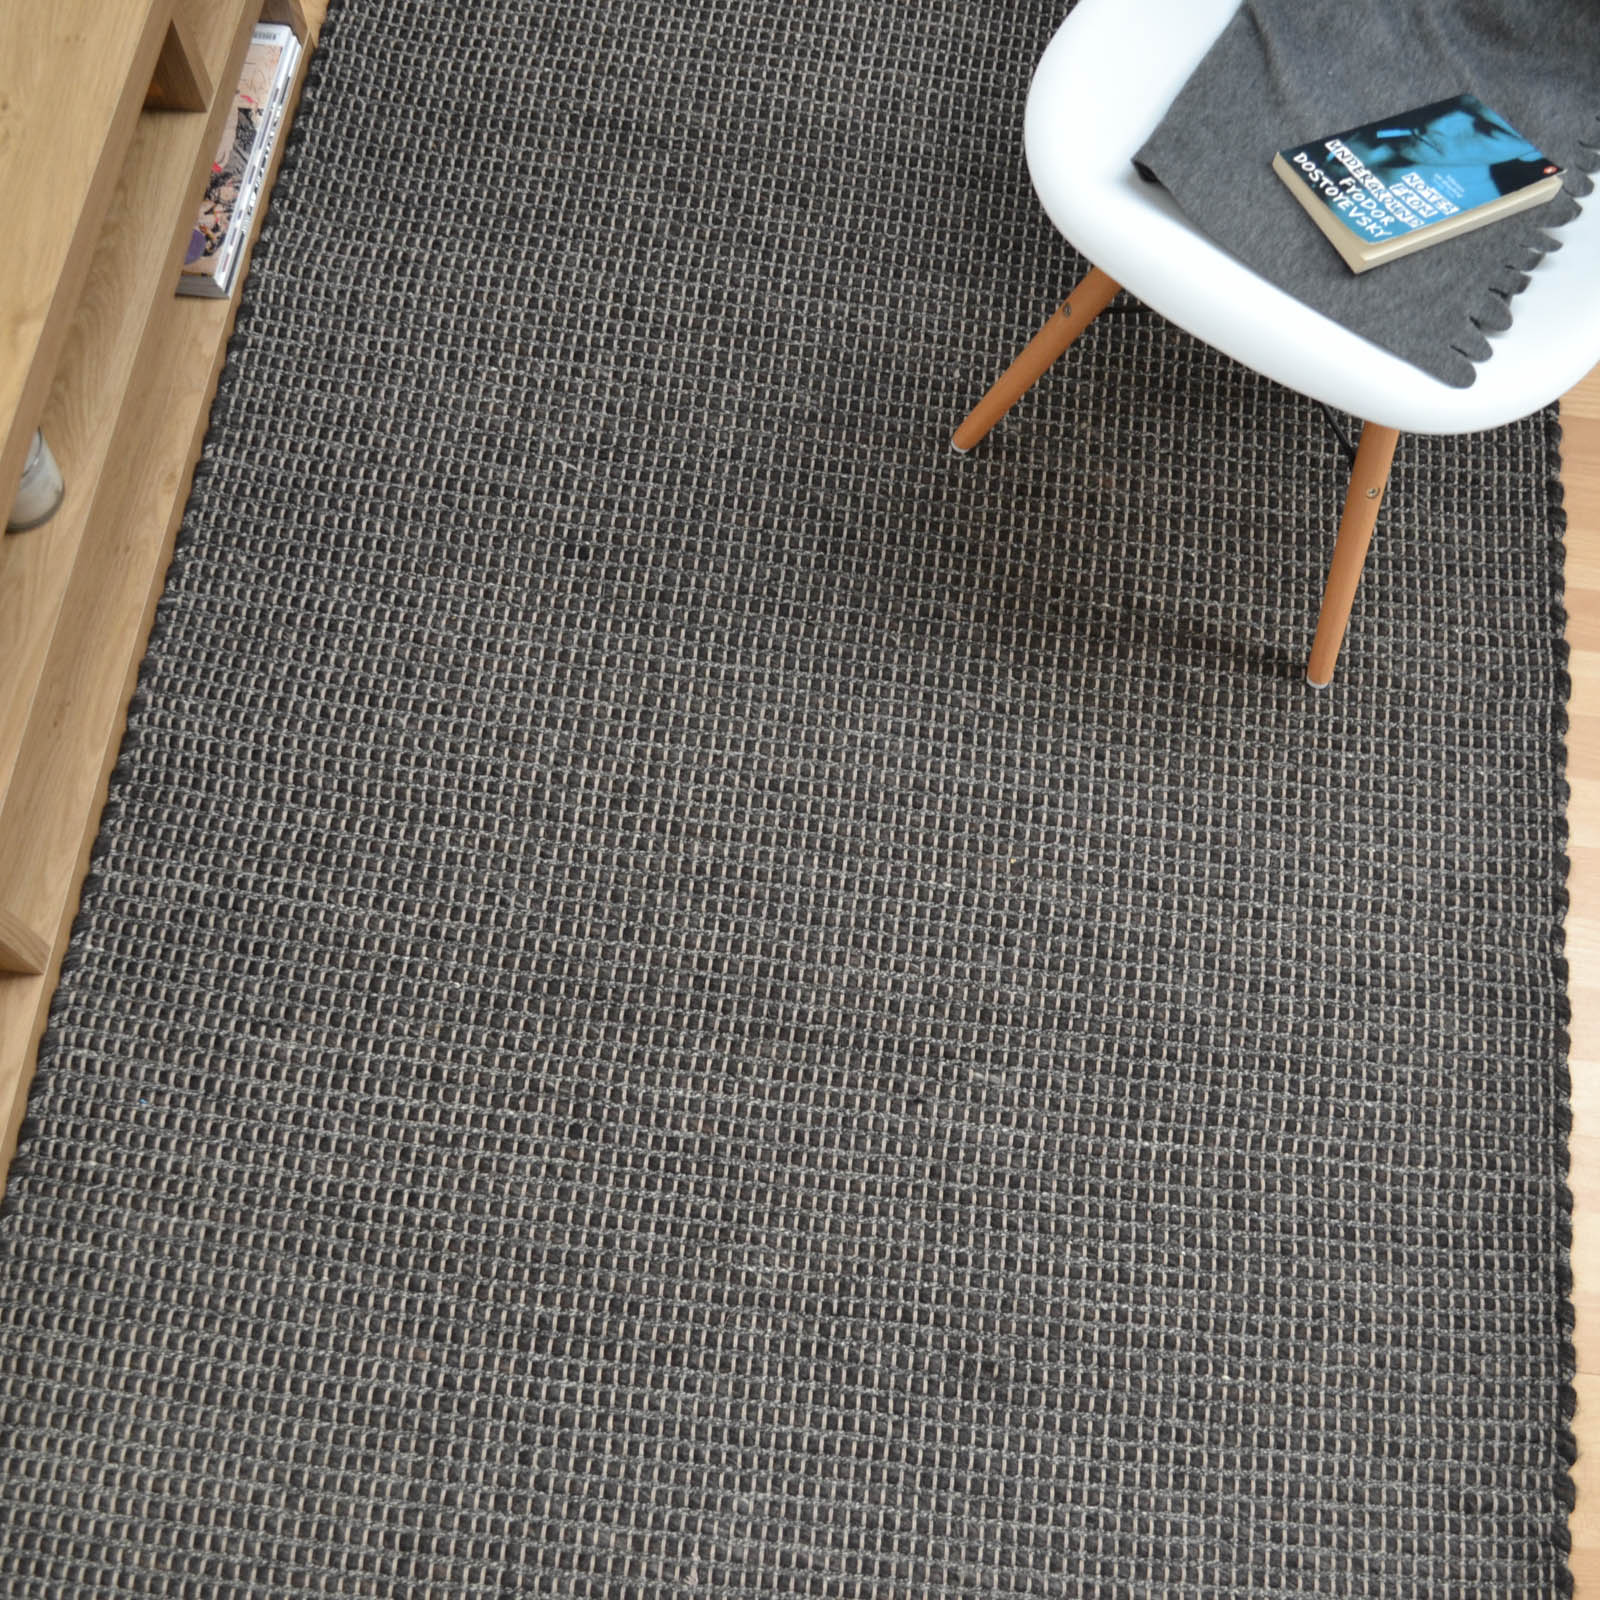 Enzo Rugs in Charcoal